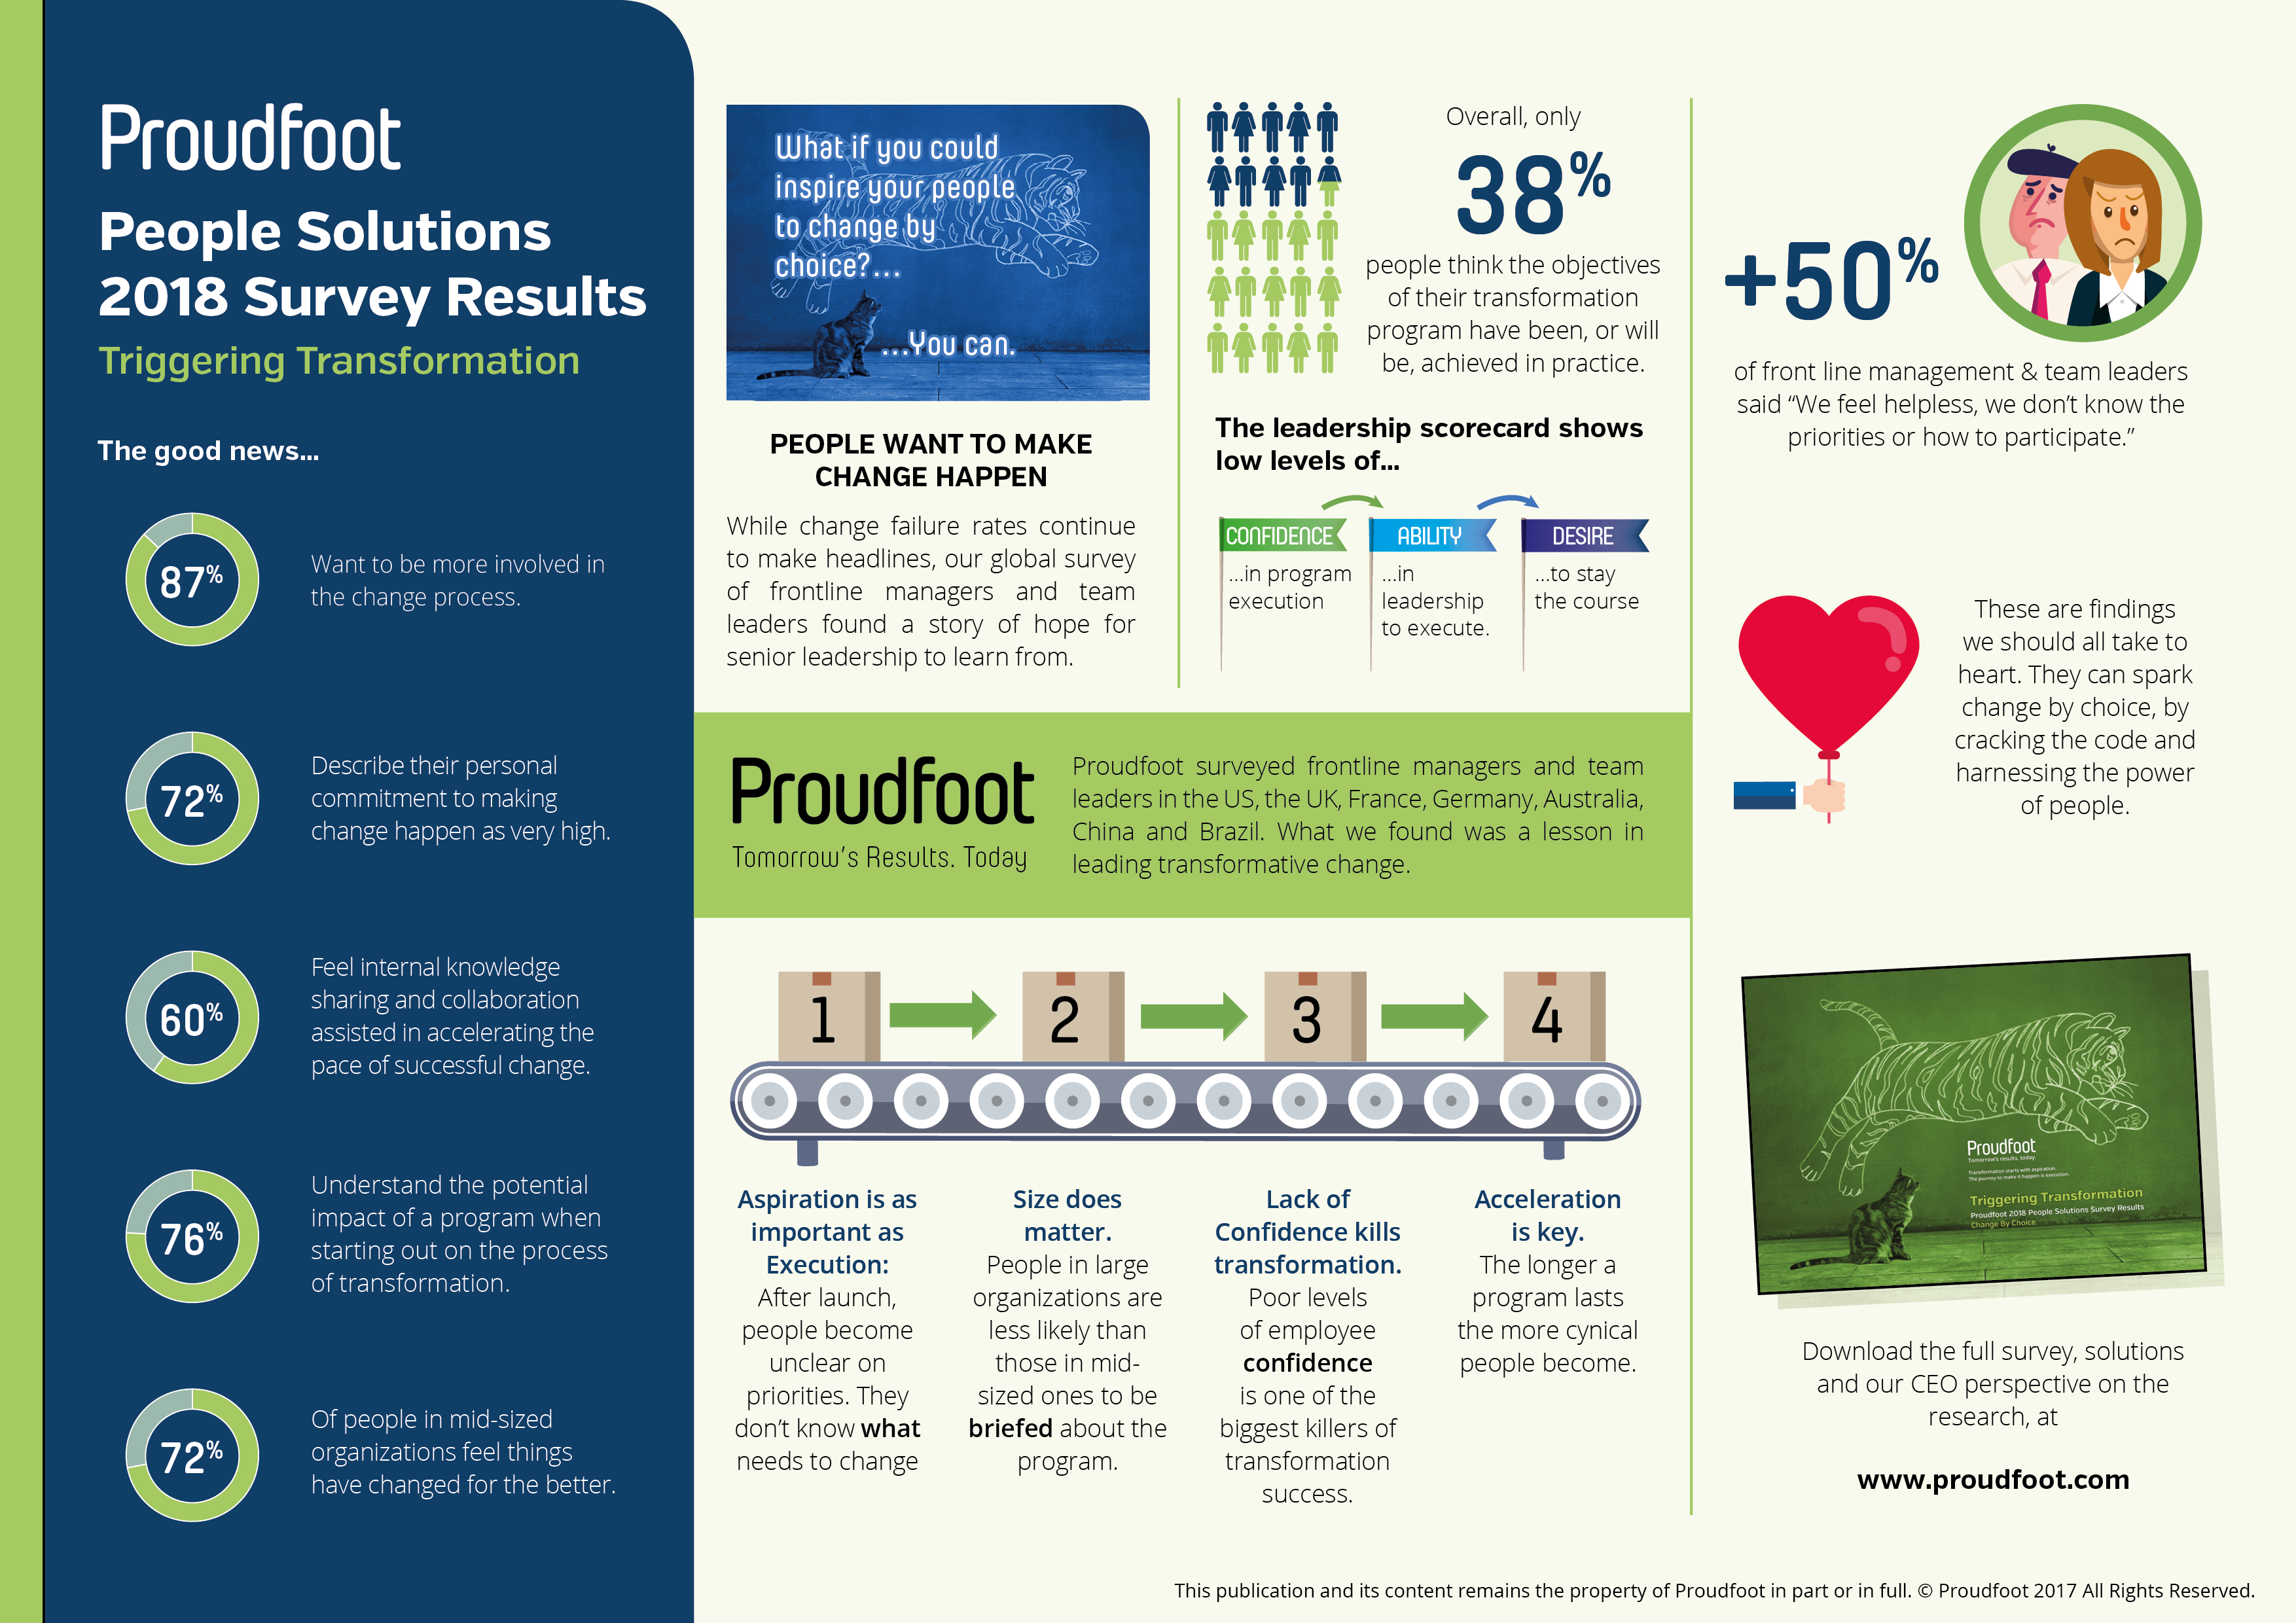 proudfoot-2018-people-solutions-survey-results-triggering-transformation.png